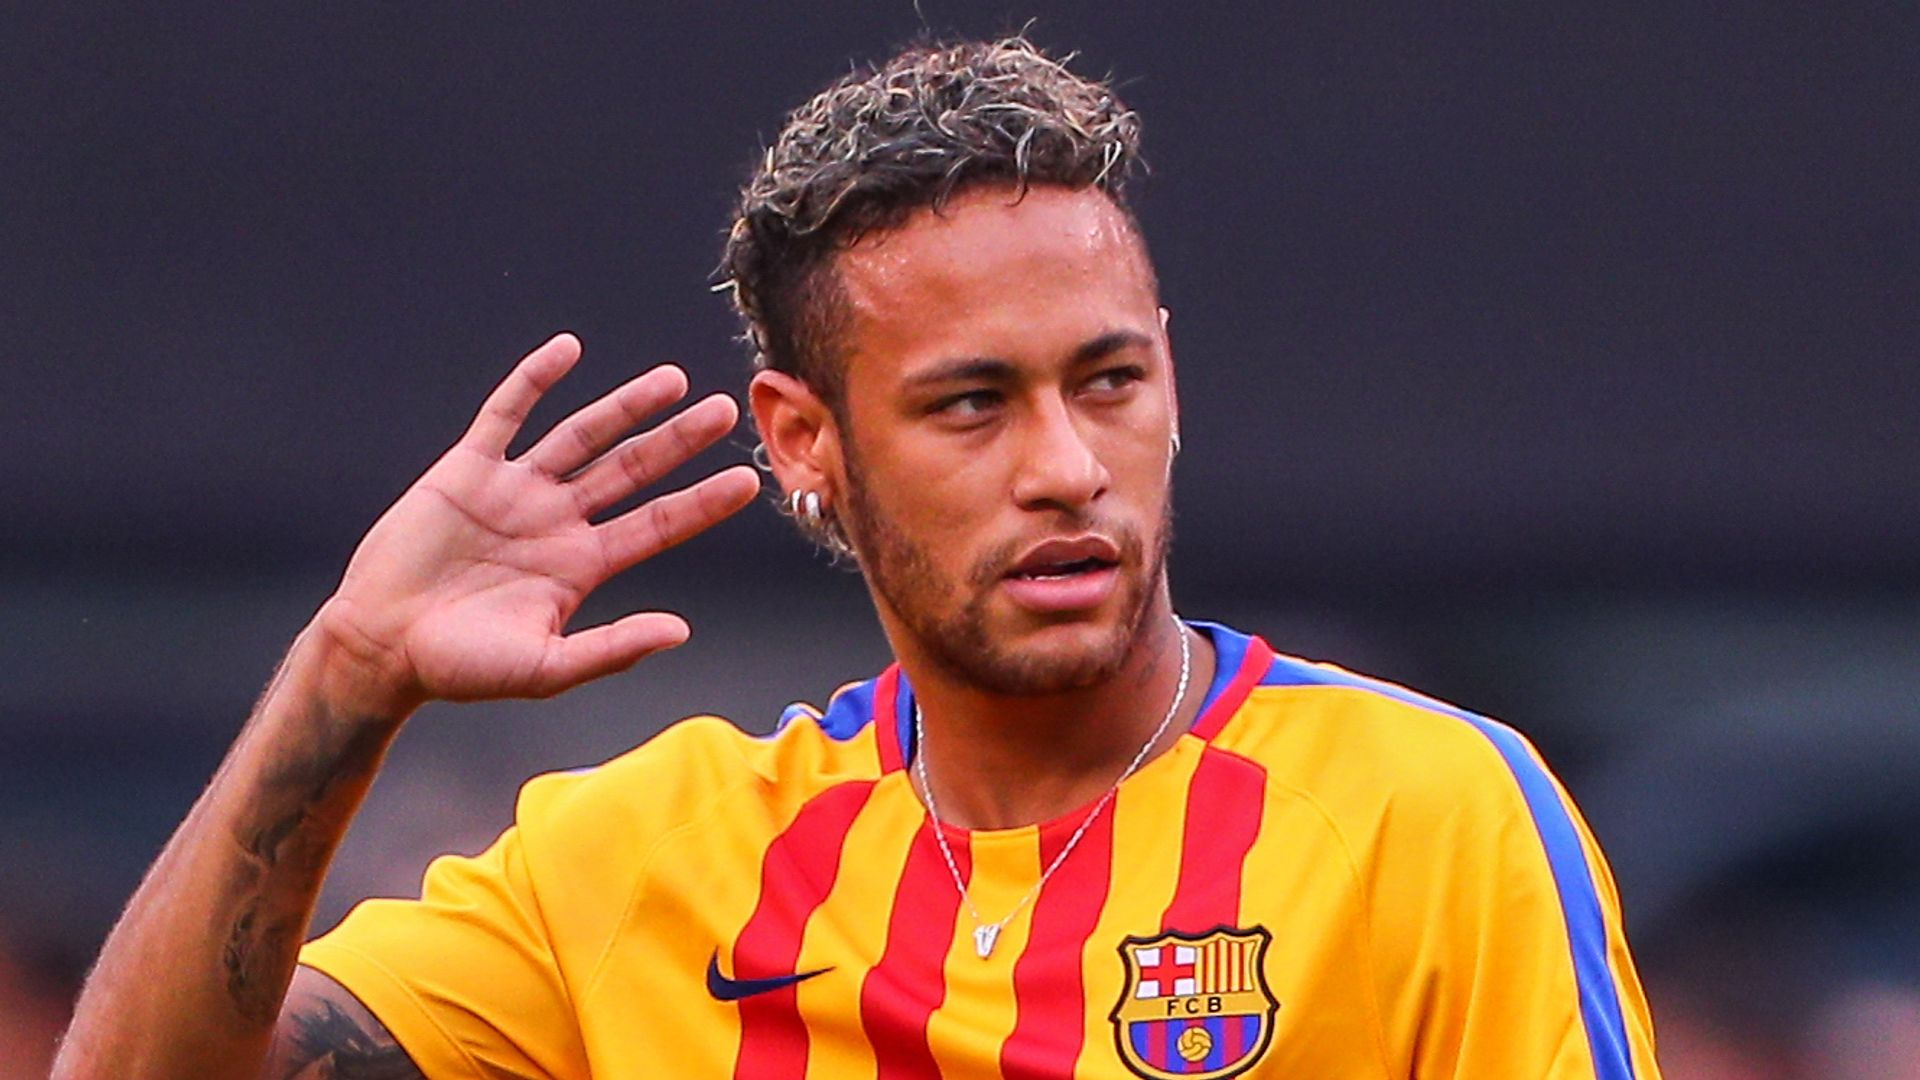 Barcelona and Neymar end legal dispute in 'amicable' out-of-court settlement |